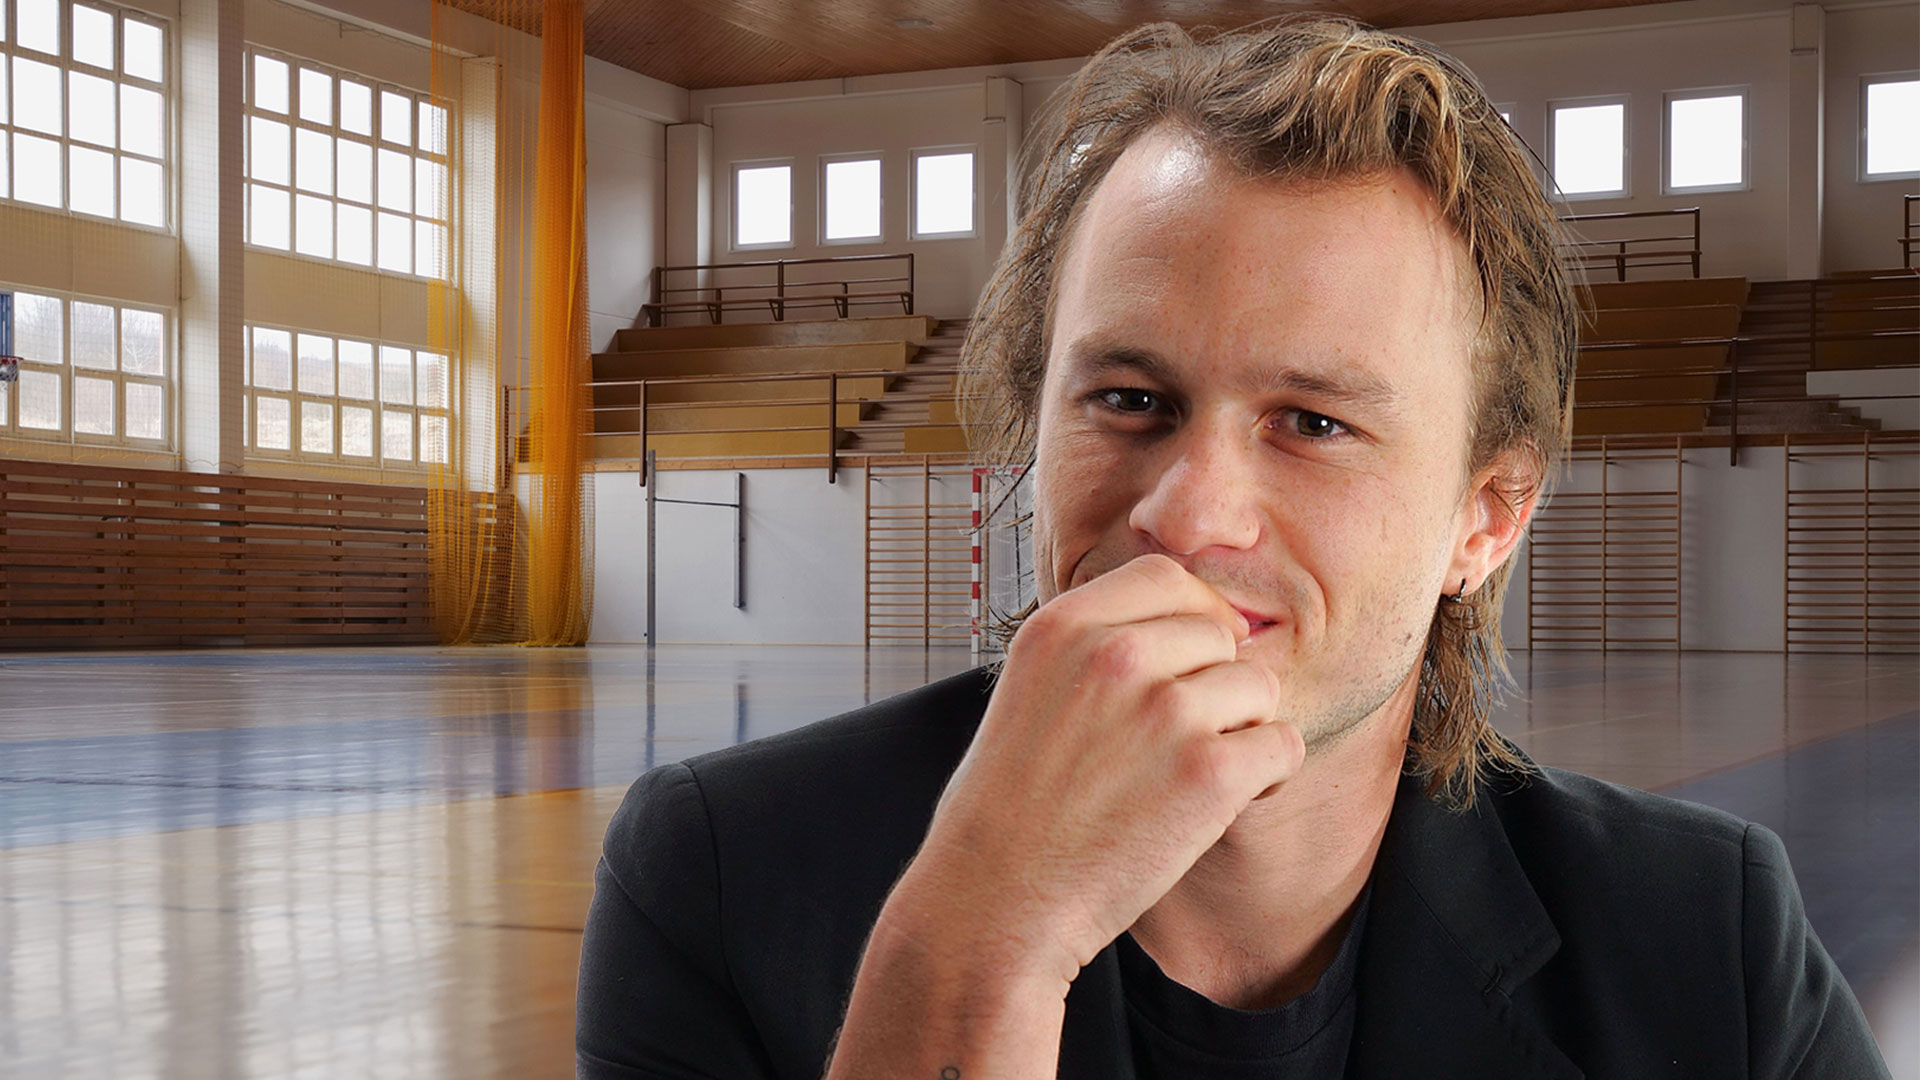 Biography Presents: Heath Ledger